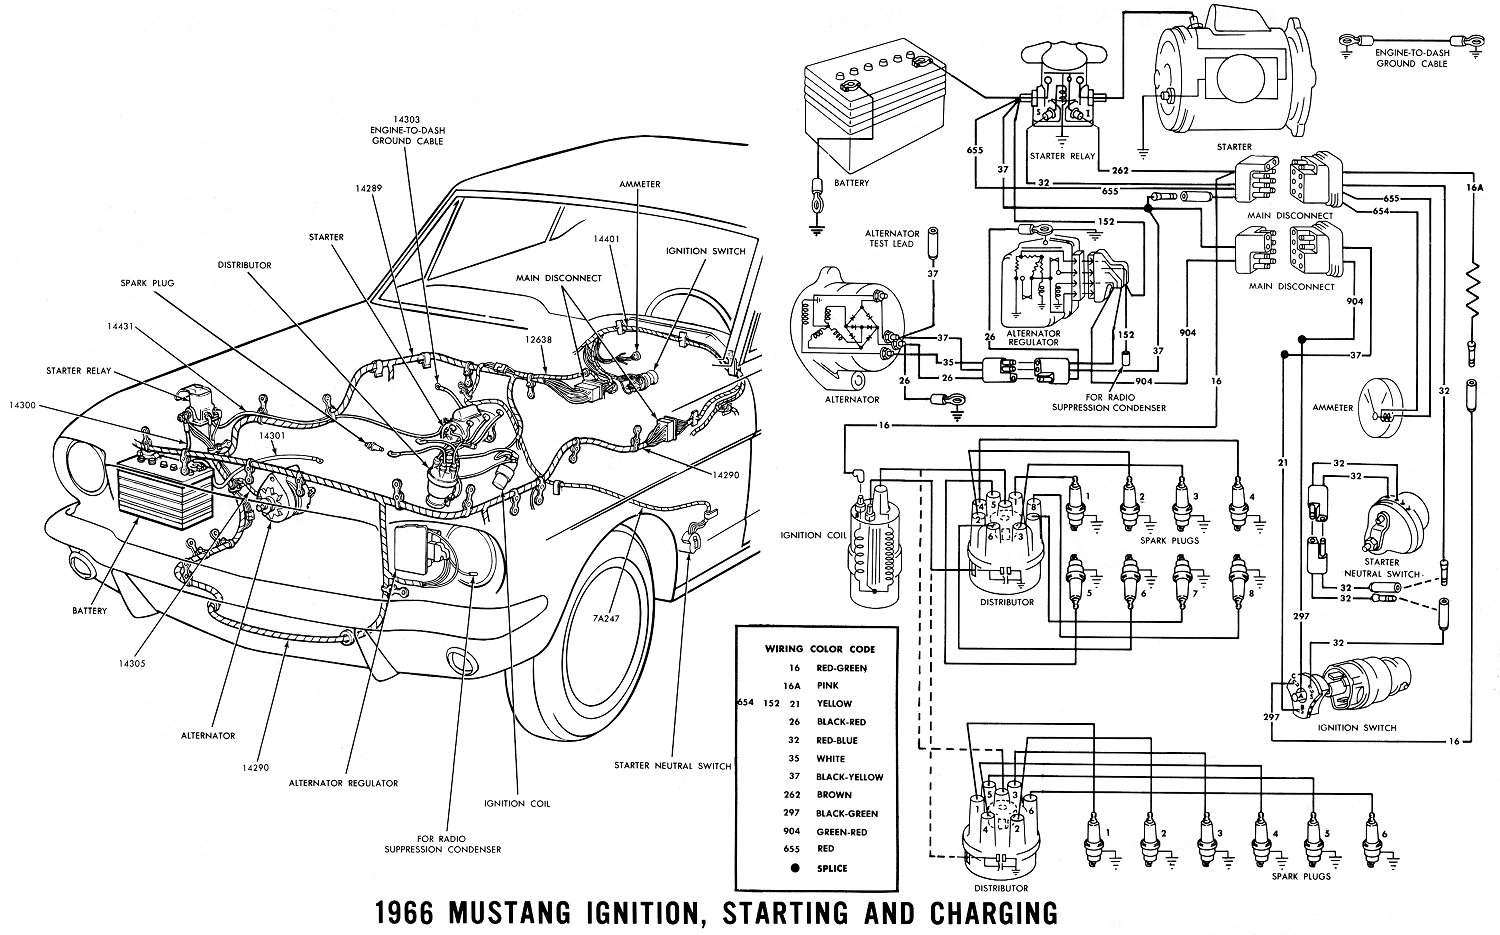 66ignit 1966 mustang wiring diagrams average joe restoration wiring diagram for 1966 ford fairlane at gsmx.co